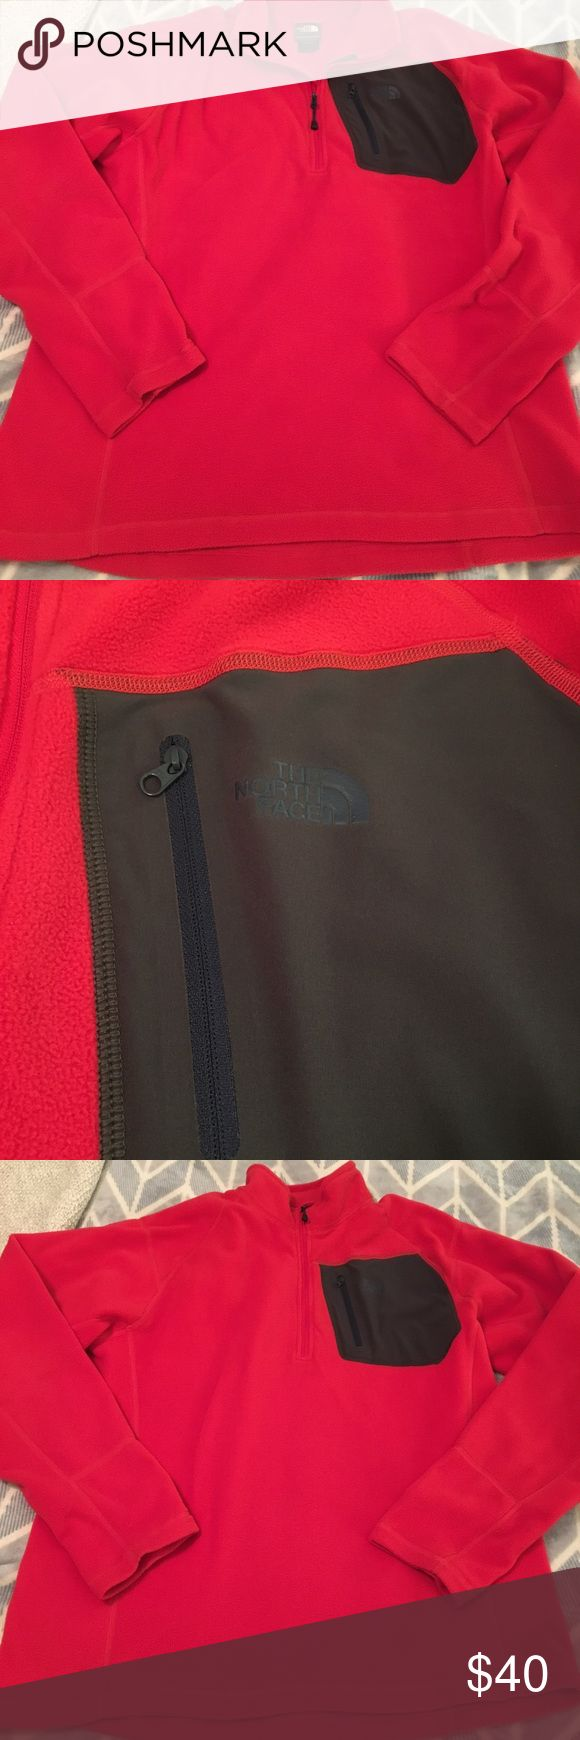 The North Face Fleece Pullover Men's red North Face fleece Polartec Classic pullover, great condition, no flaws, worn probably a total of 2 times. The North Face Jackets & Coats Performance Jackets